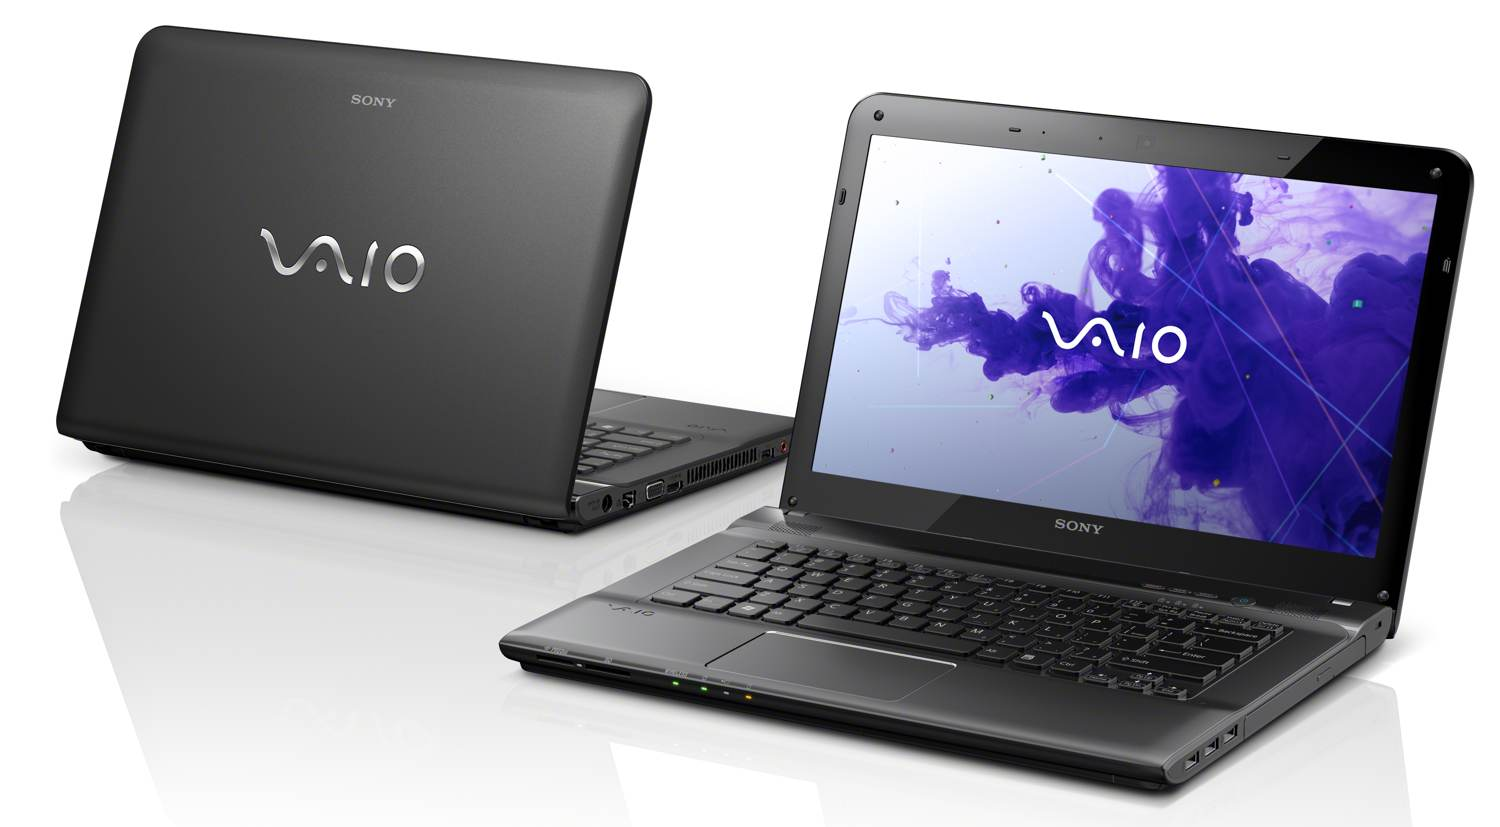 Sony Vaio E Series Drivers Download For Windows 8